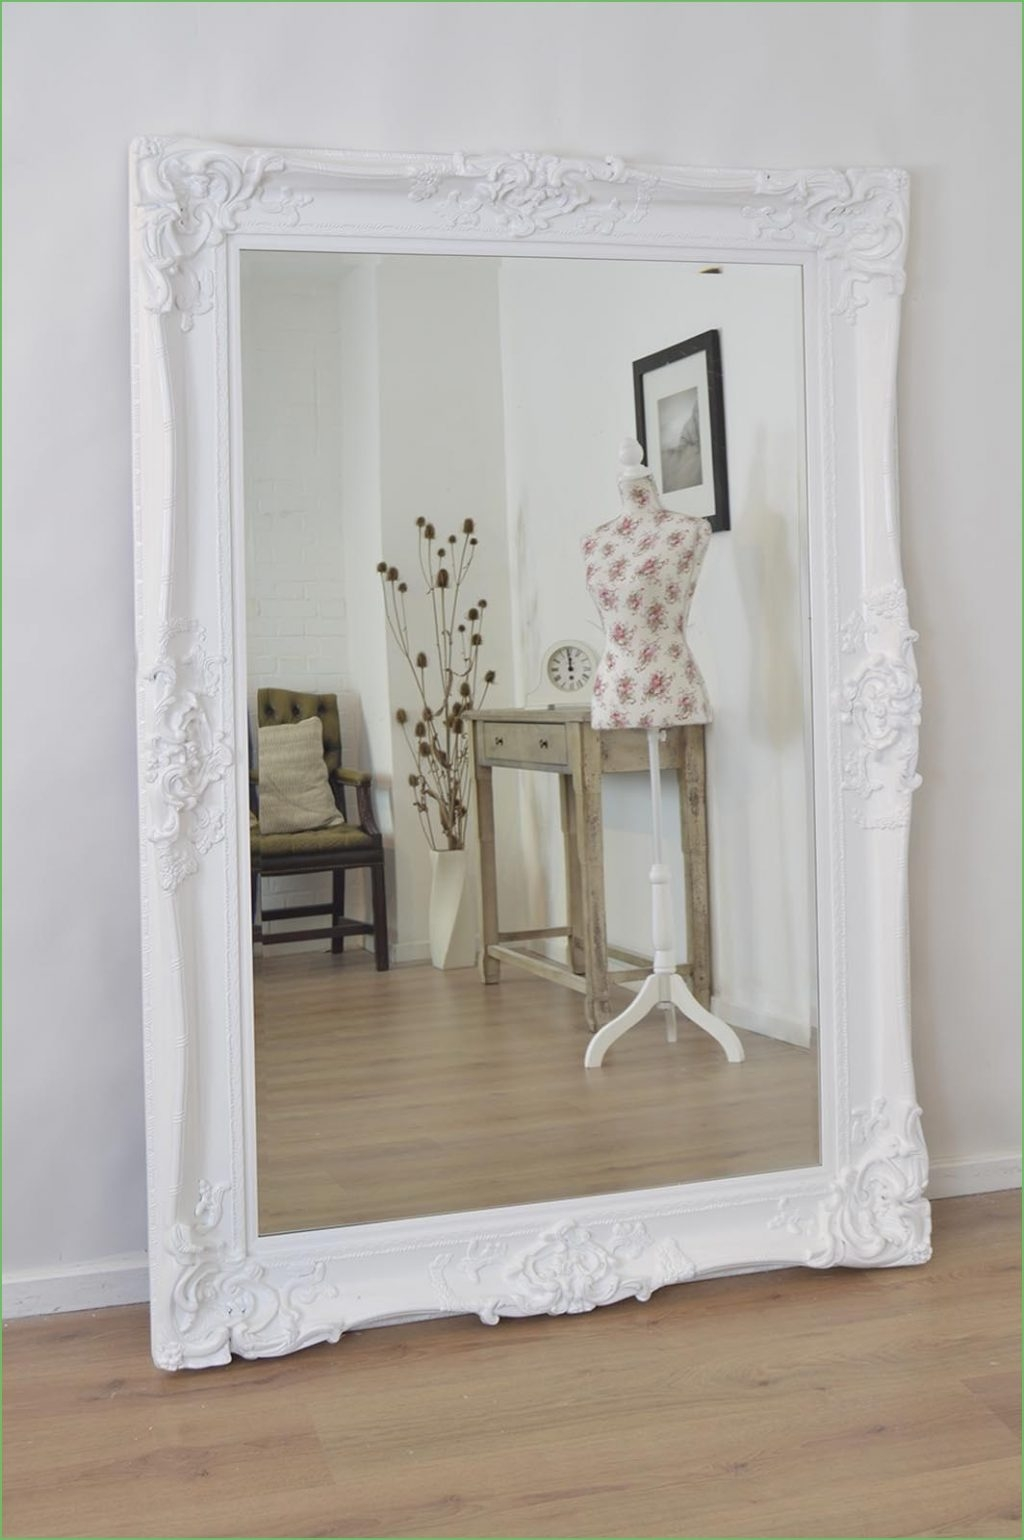 Wall Mirrors Ornate Wall Mirror Ornate Wall Mirror Black Regarding Shabby Chic Large Wall Mirrors (View 15 of 15)